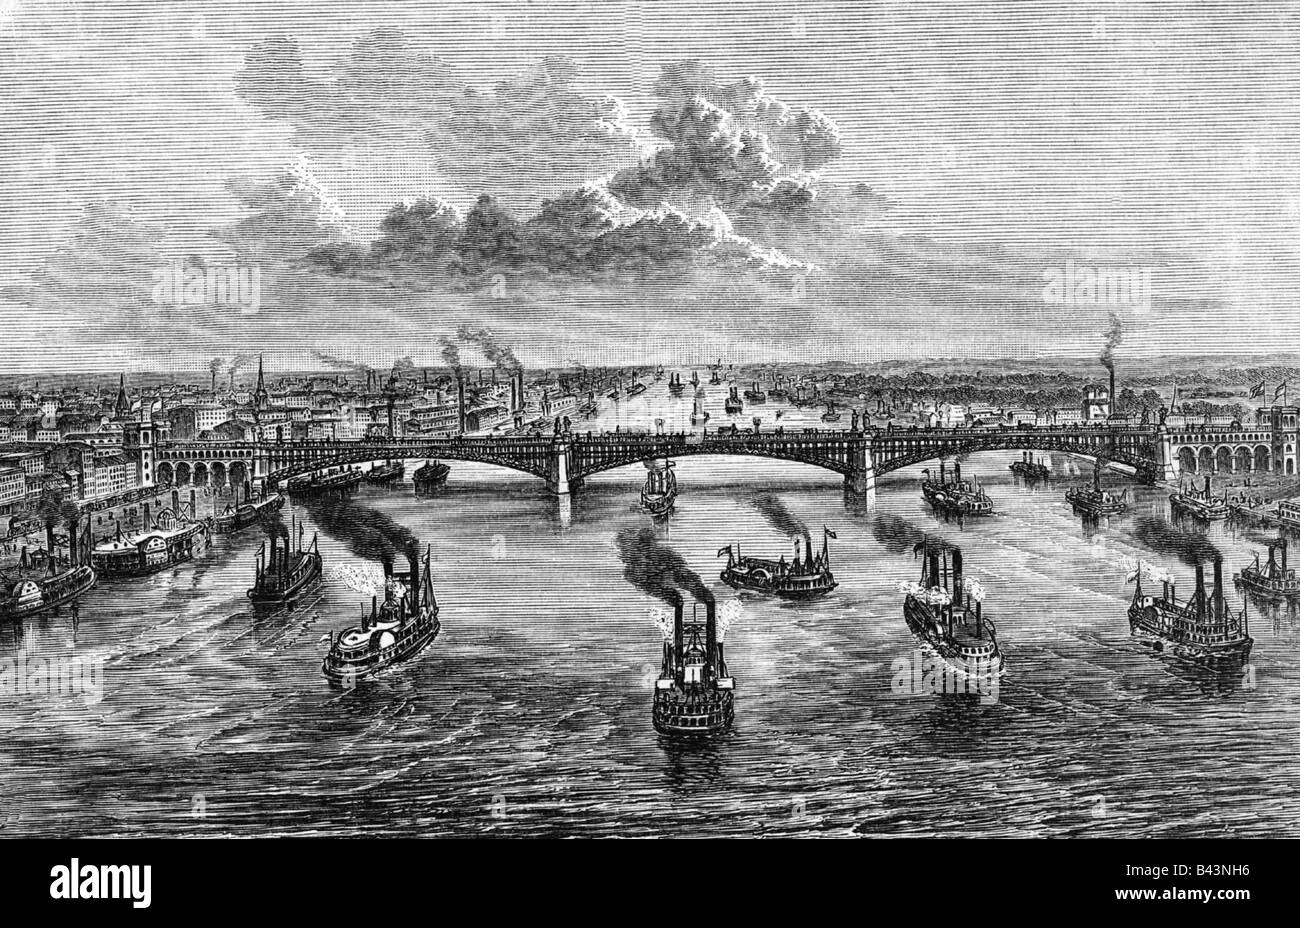 geography / travel, USA, Saint Louis, Missouri, bridge, Mississippi, engraving, 1882, Additional-Rights-Clearances - Stock Image